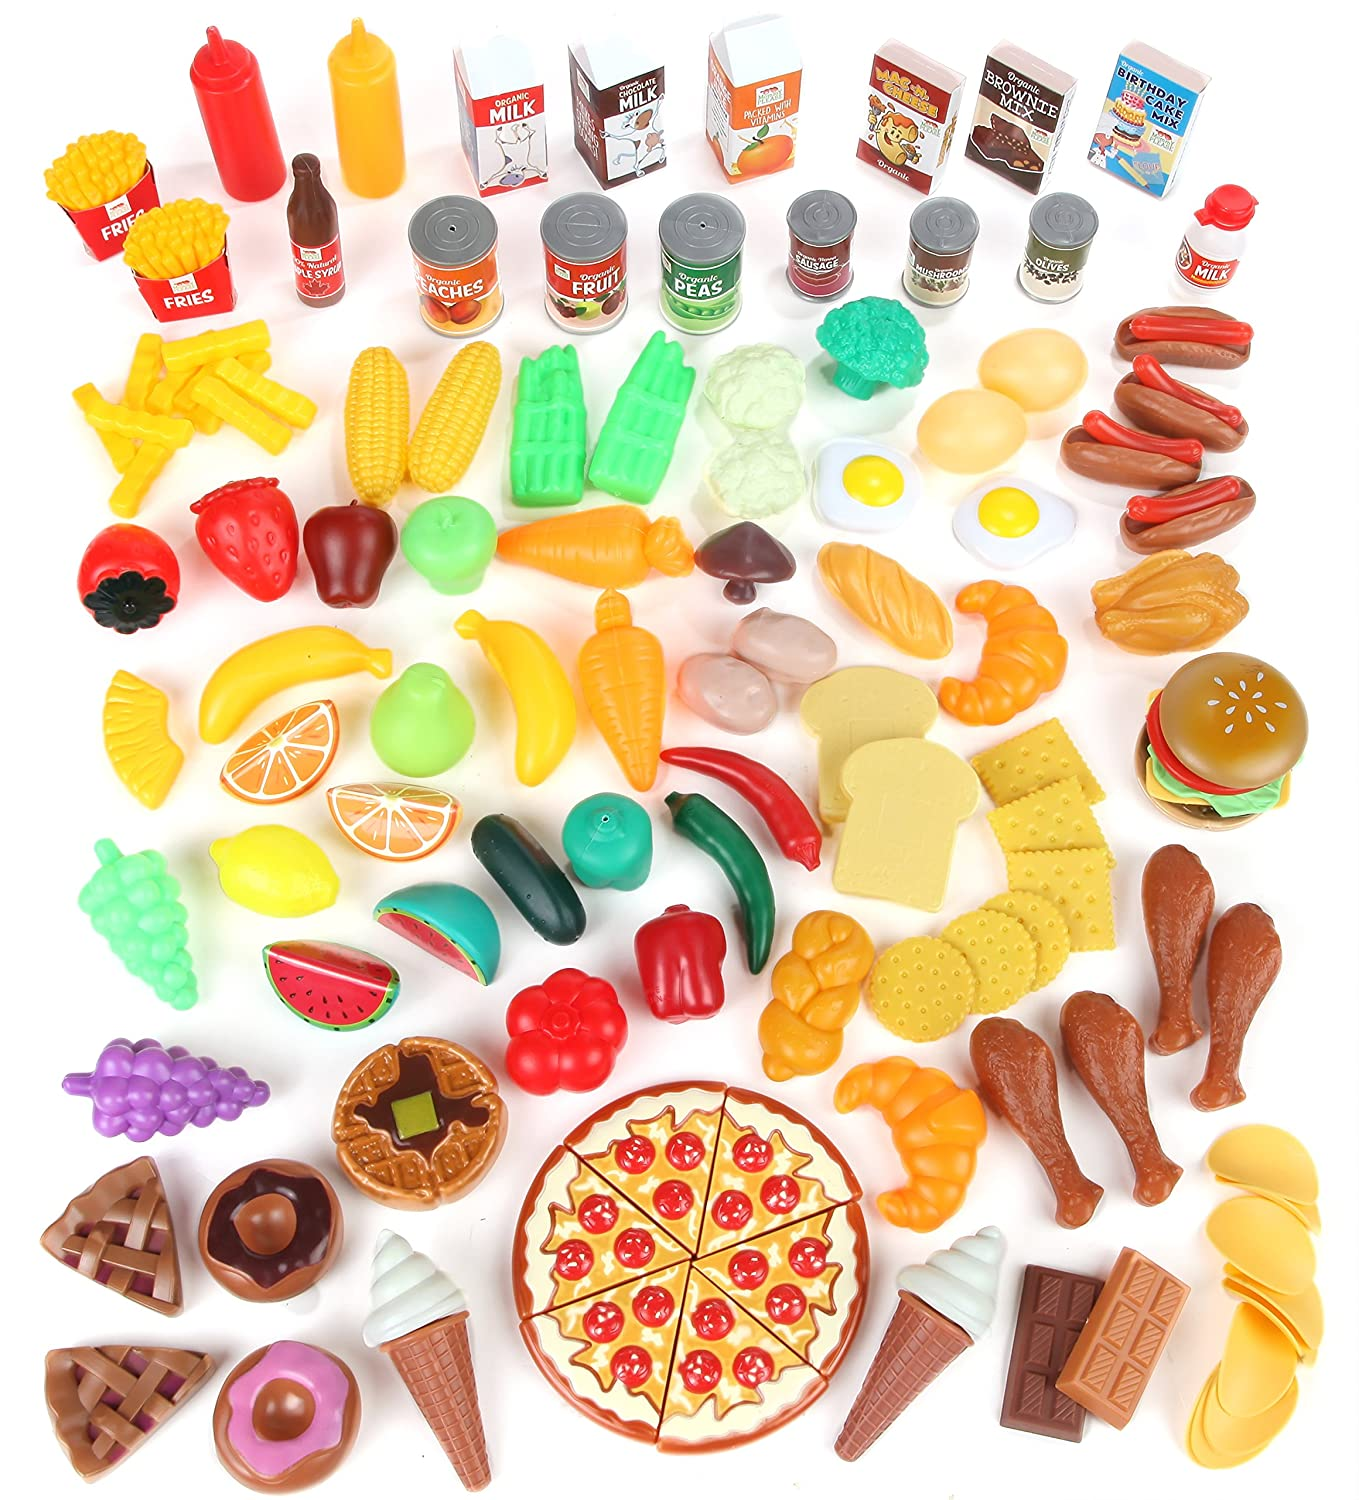 Play Food Set for Kids & Toy Food for Pretend Play